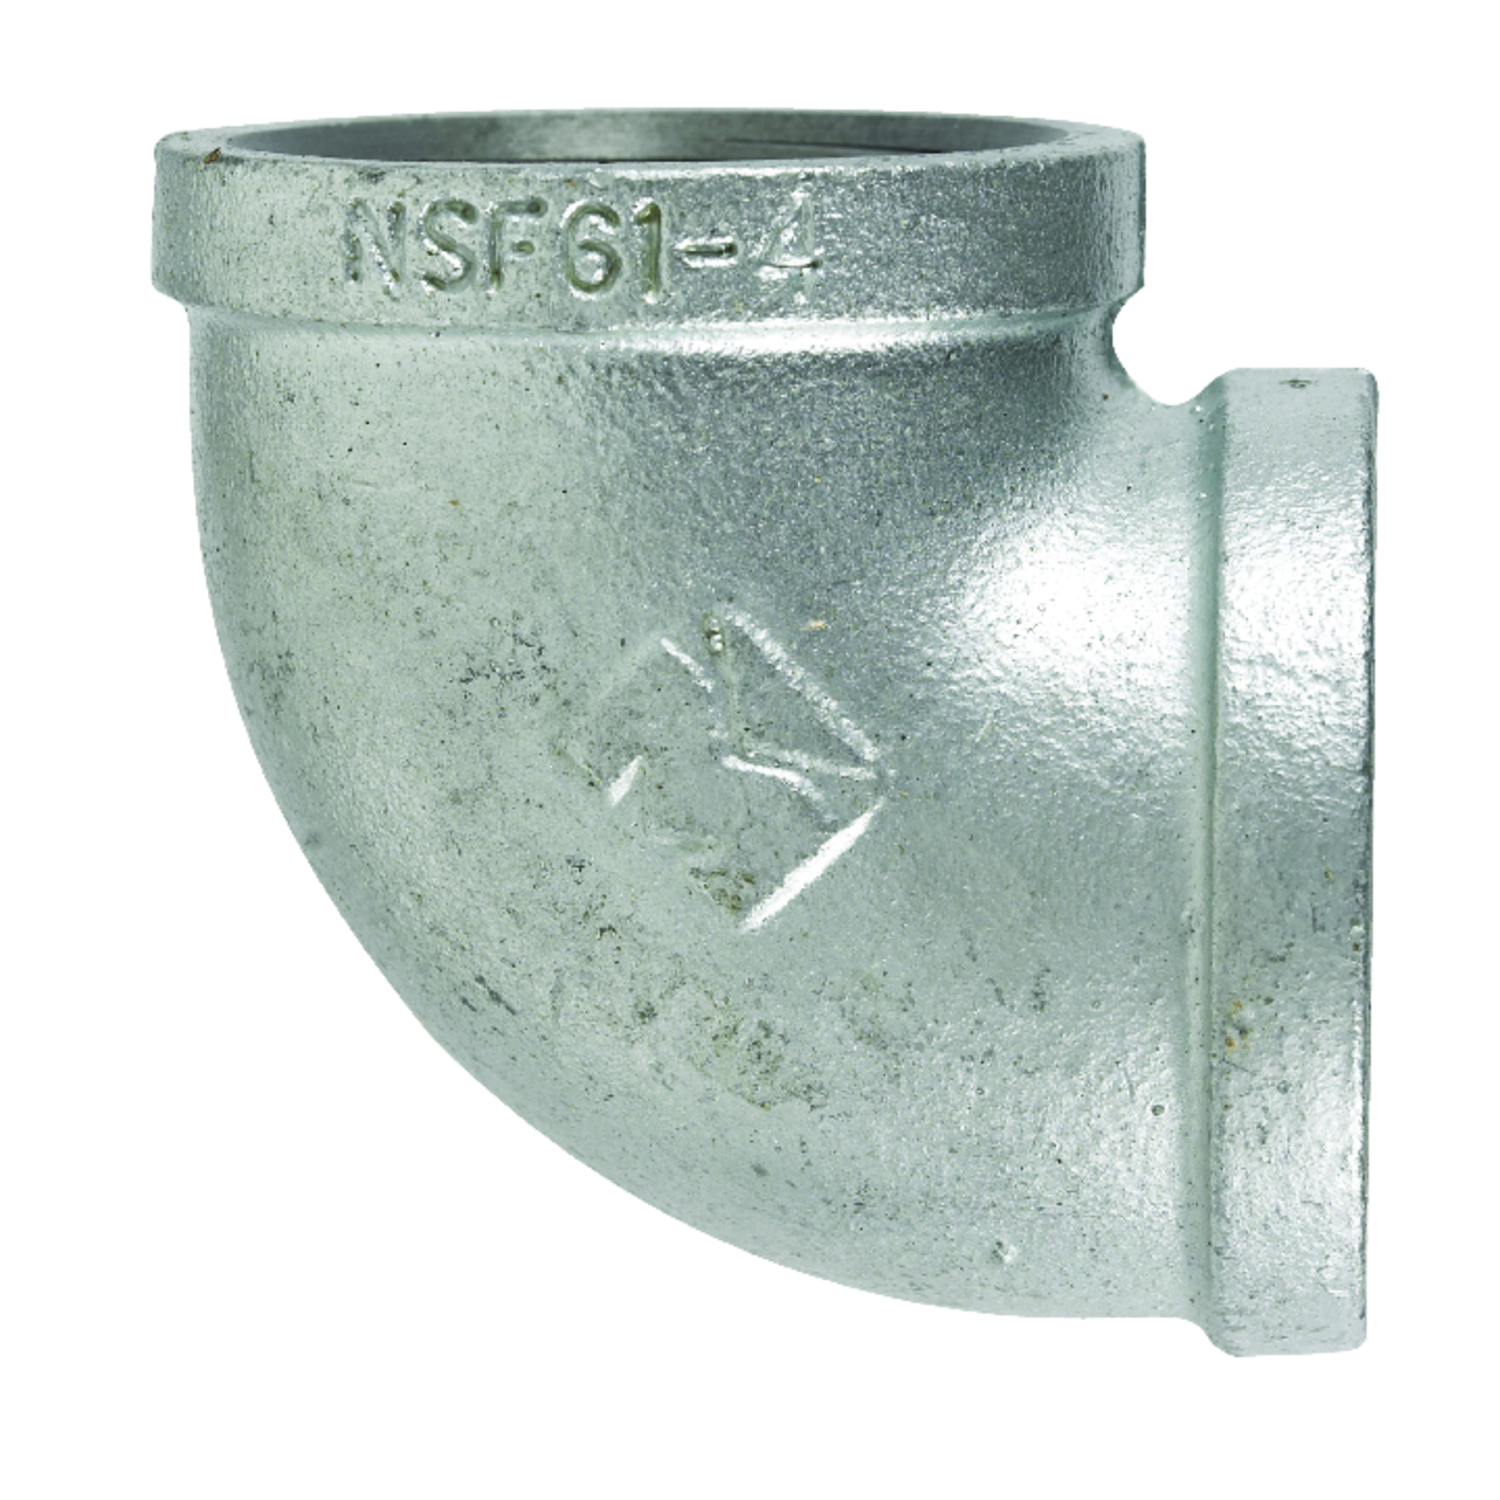 B & K  1 in. FPT   x 1 in. Dia. FPT  Galvanized  Malleable Iron  Elbow